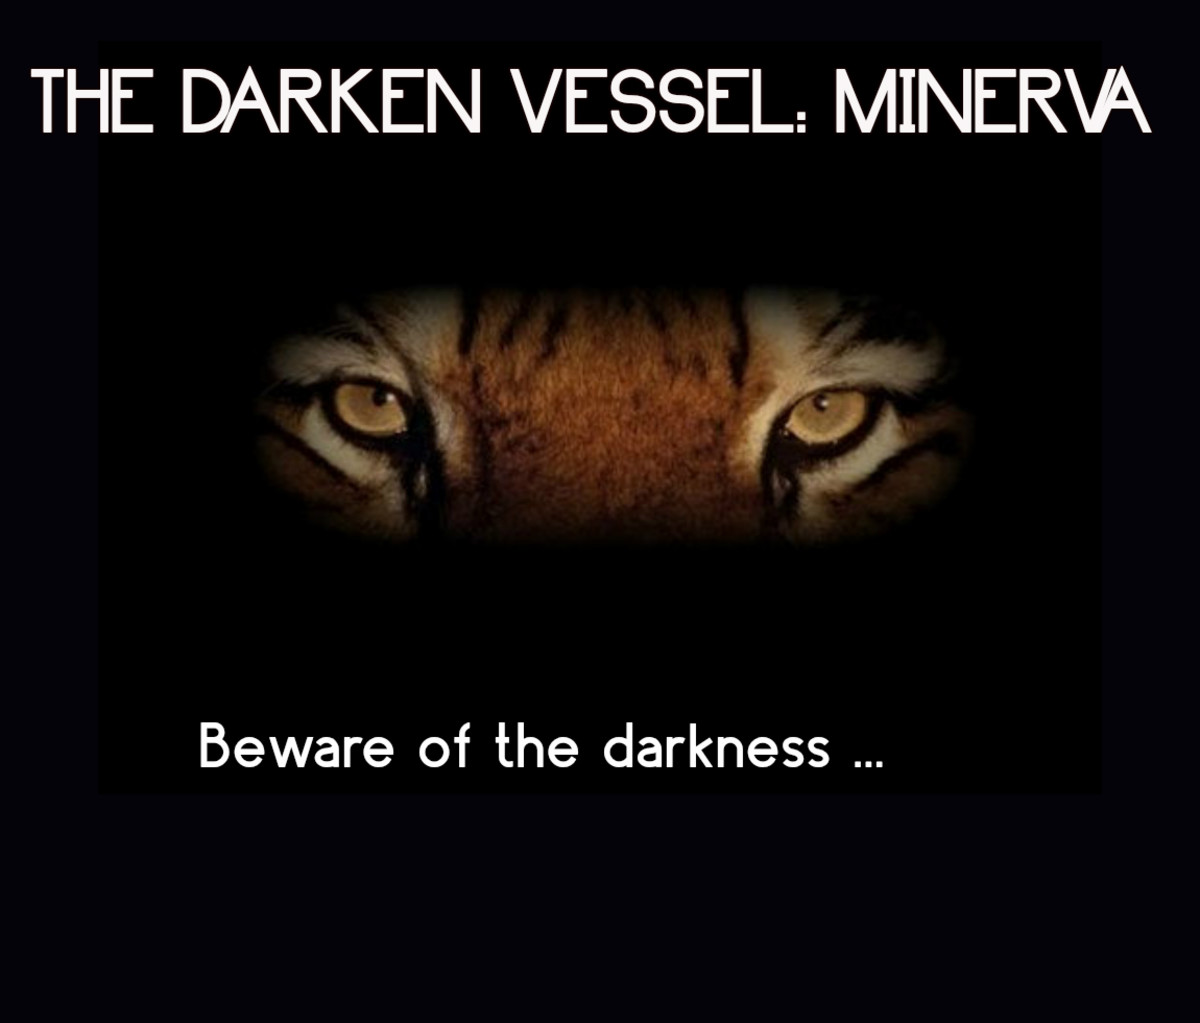 The Darken Vessel: Minerva